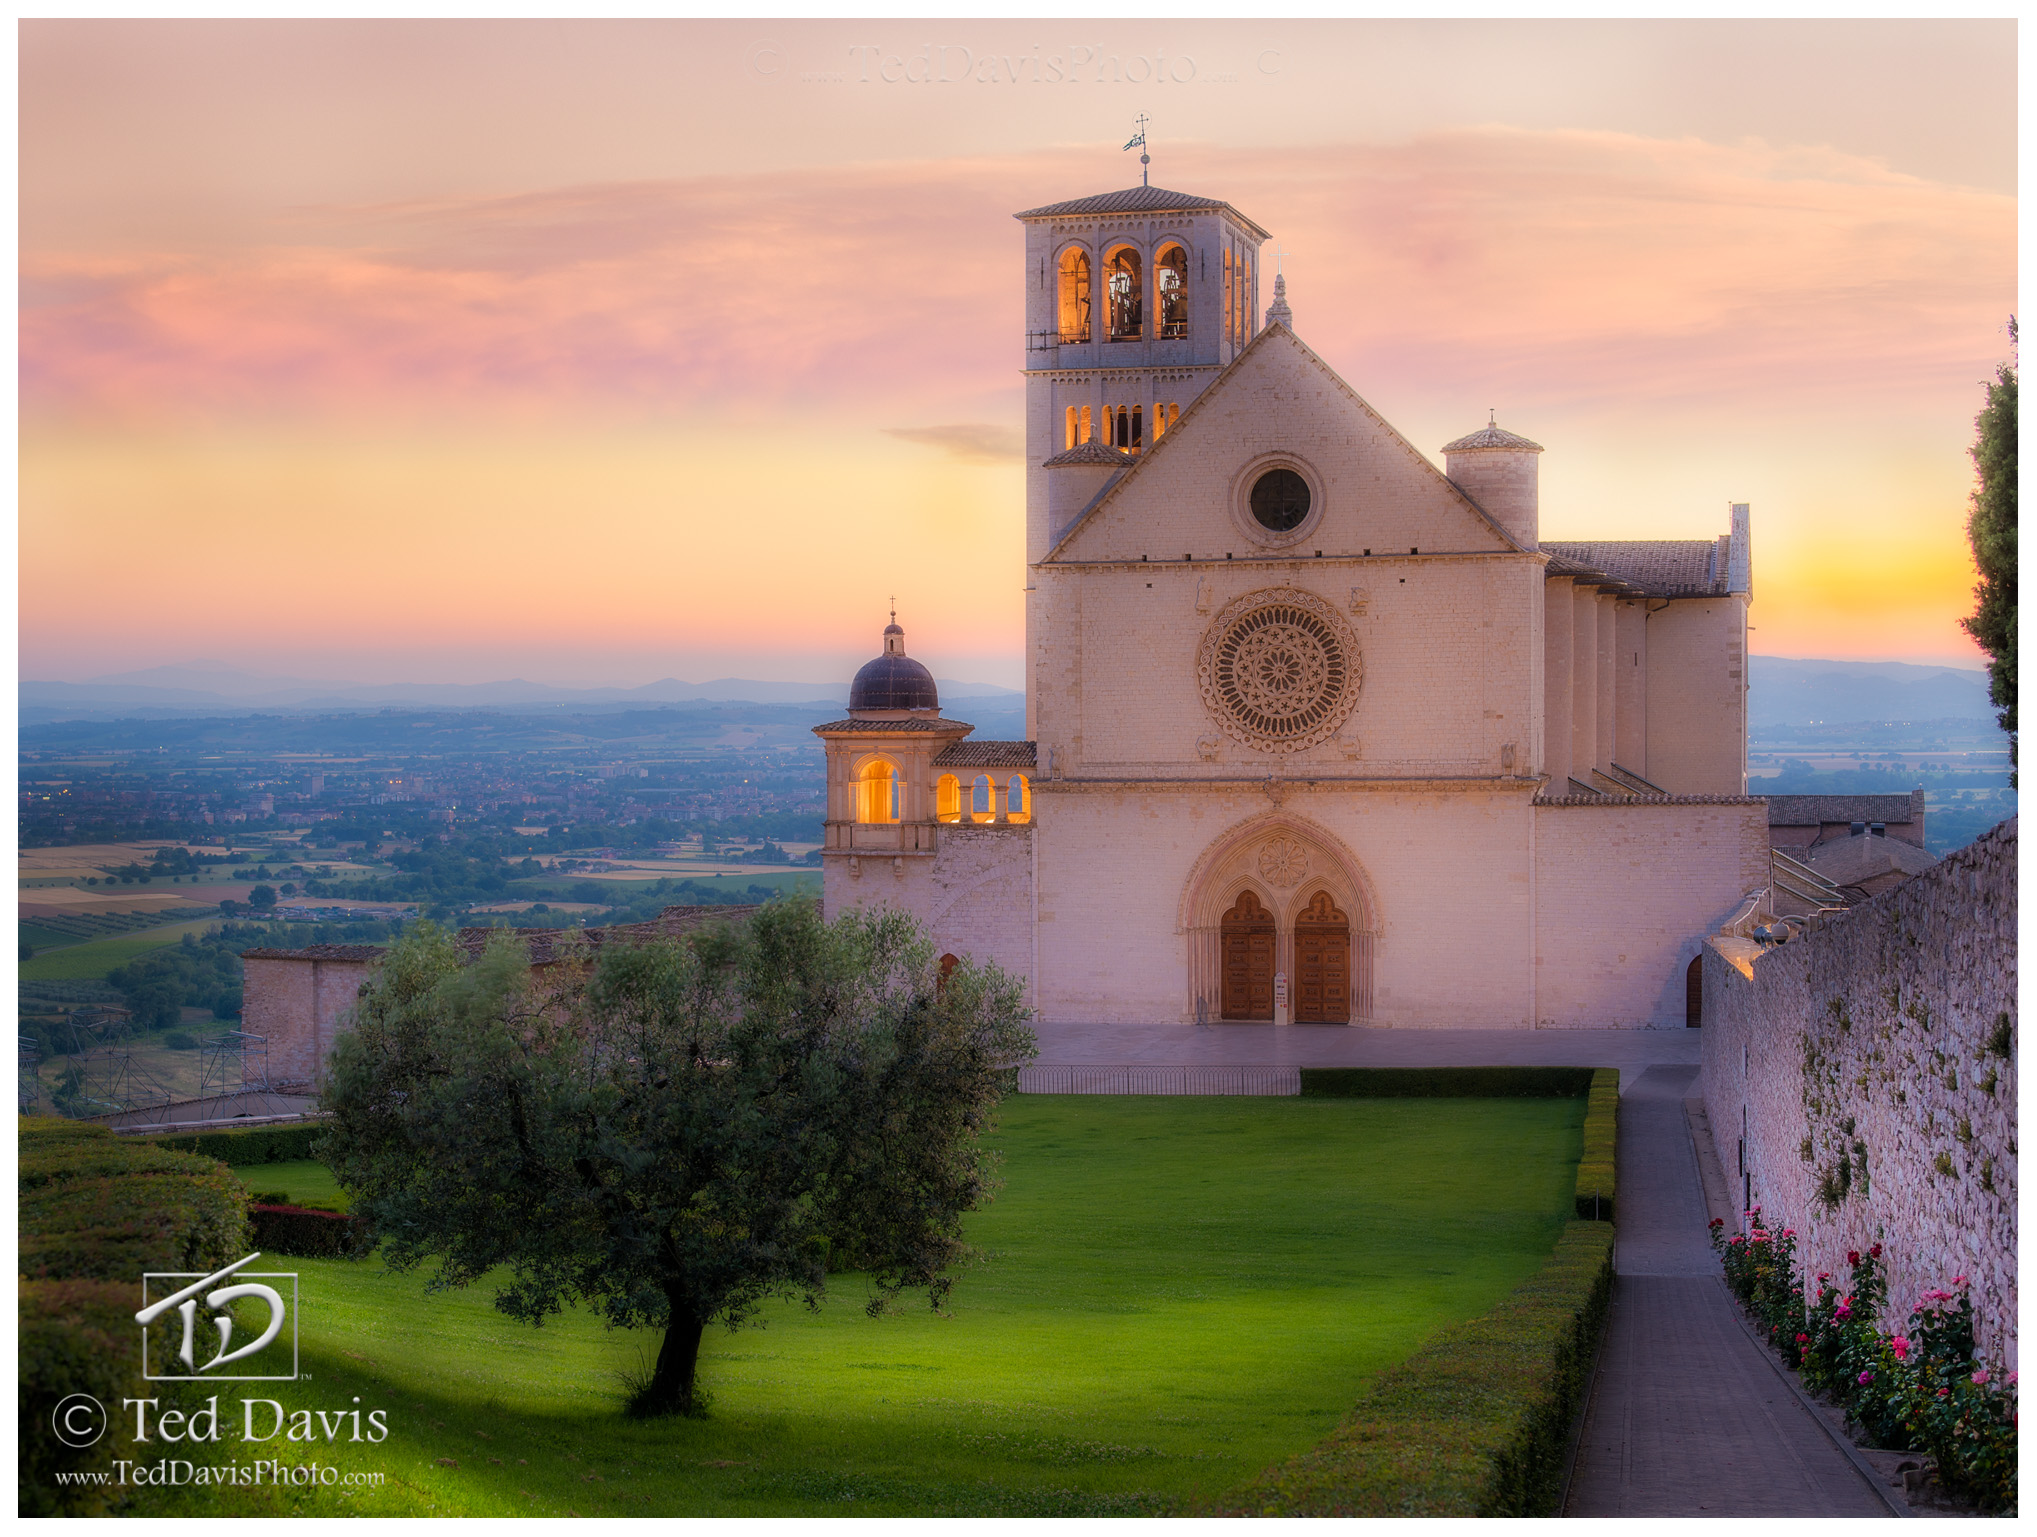 Limited Edition of 100 The fantastic walled city of Assisi is famed as the birthplace of St. Francis. I spent two days experiencing...